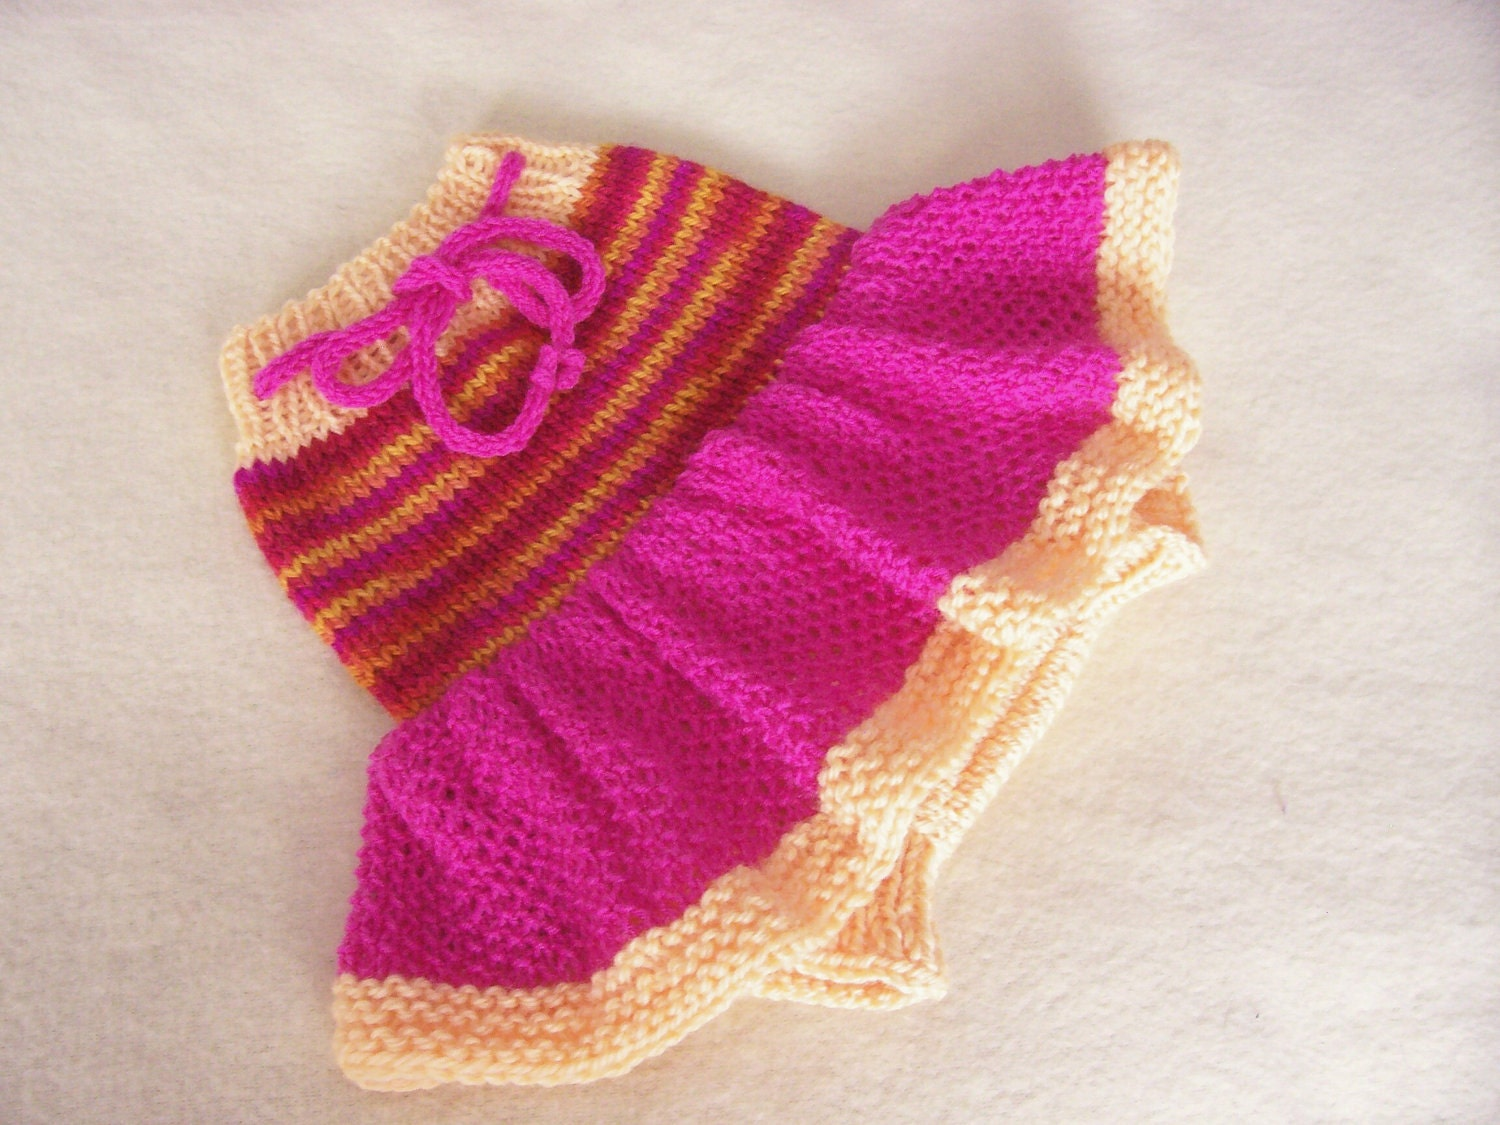 Knit Wool Diaper Cover Pattern : Hand Knitted Wool Cloth Diaper Cover Skirt Soaker Wool Nappy